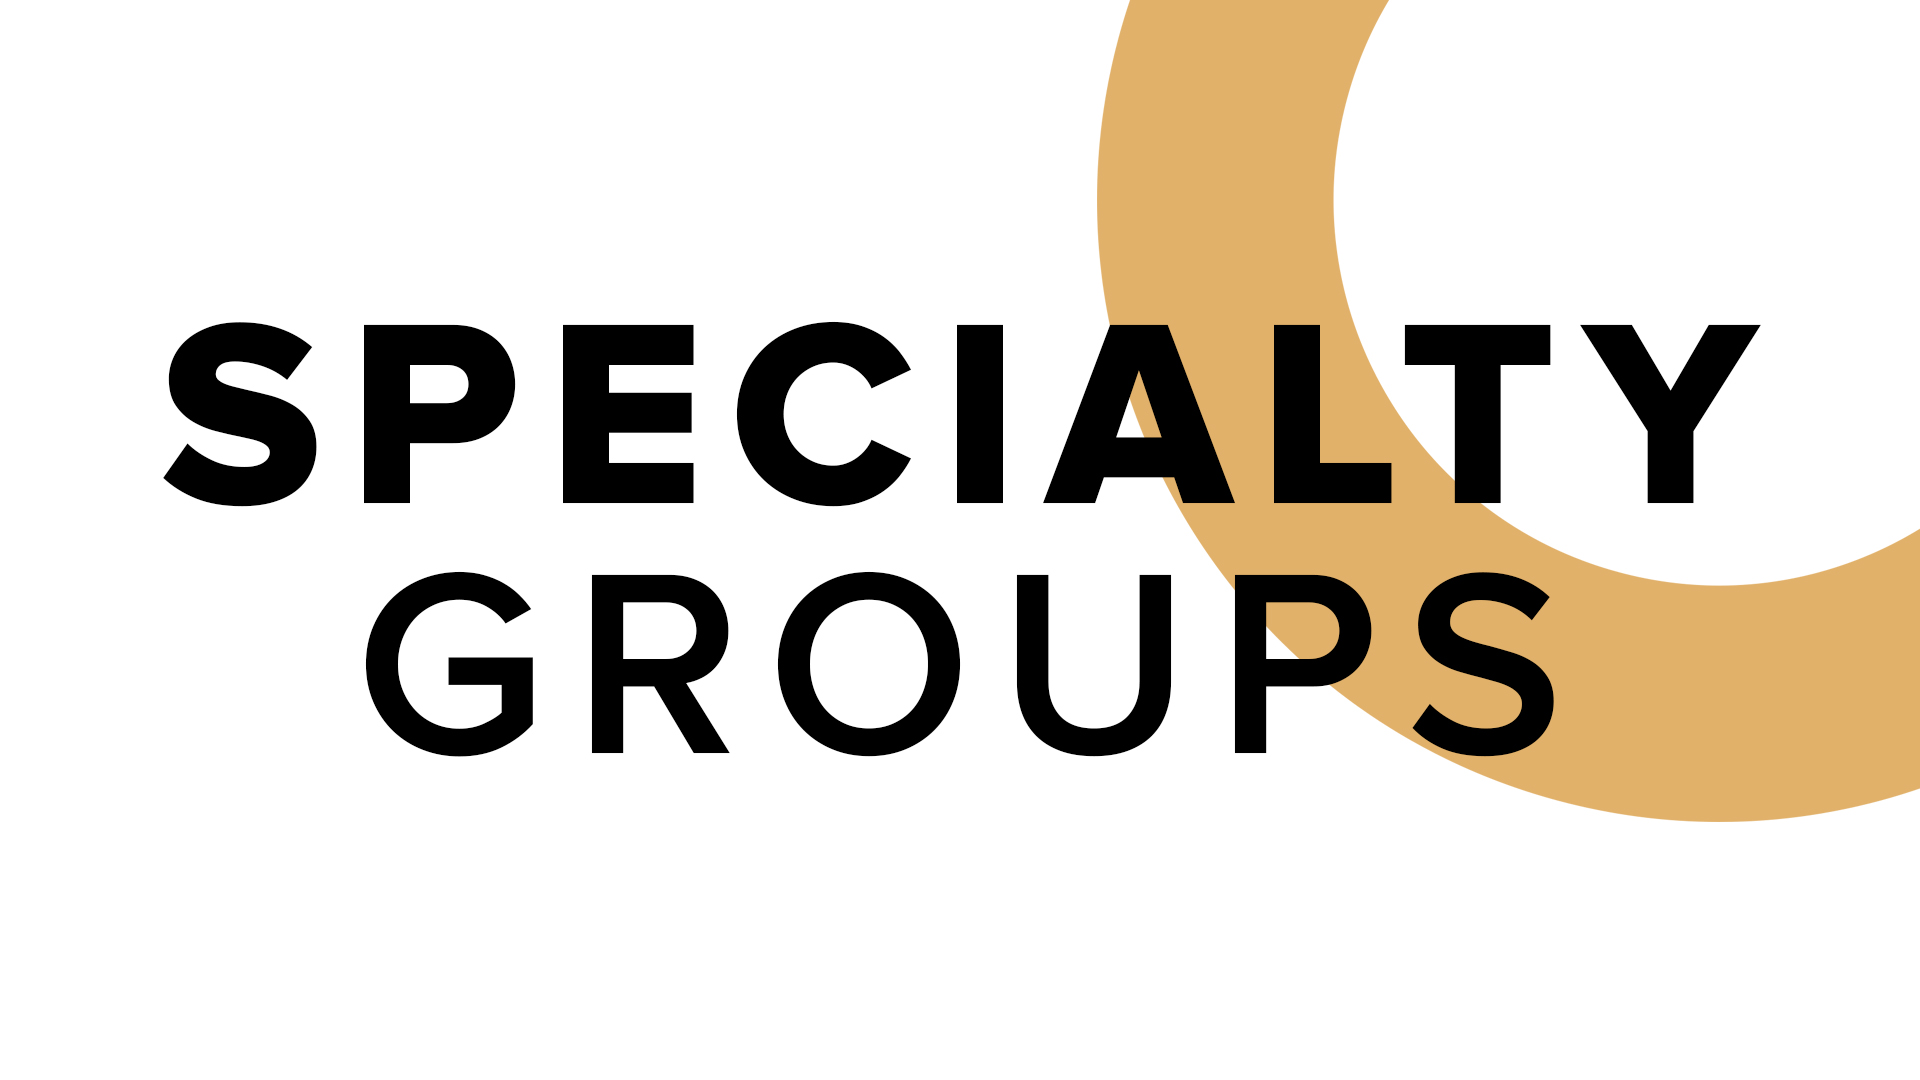 specialty groups - Specialty Groups are short-term groups, usually in a class-style format, with a start and end date, that slows down to focus on a specific topic or subject.Currently New Hope hosts several Specialty Groups with examples such as: Financial Peace University, Spiritual Gifts Class, New Believers Class, Calm Parenting University and Marriage Ministry Events such as the Dynamic Marriage Class.Different Specialty groups will be offered each semester.